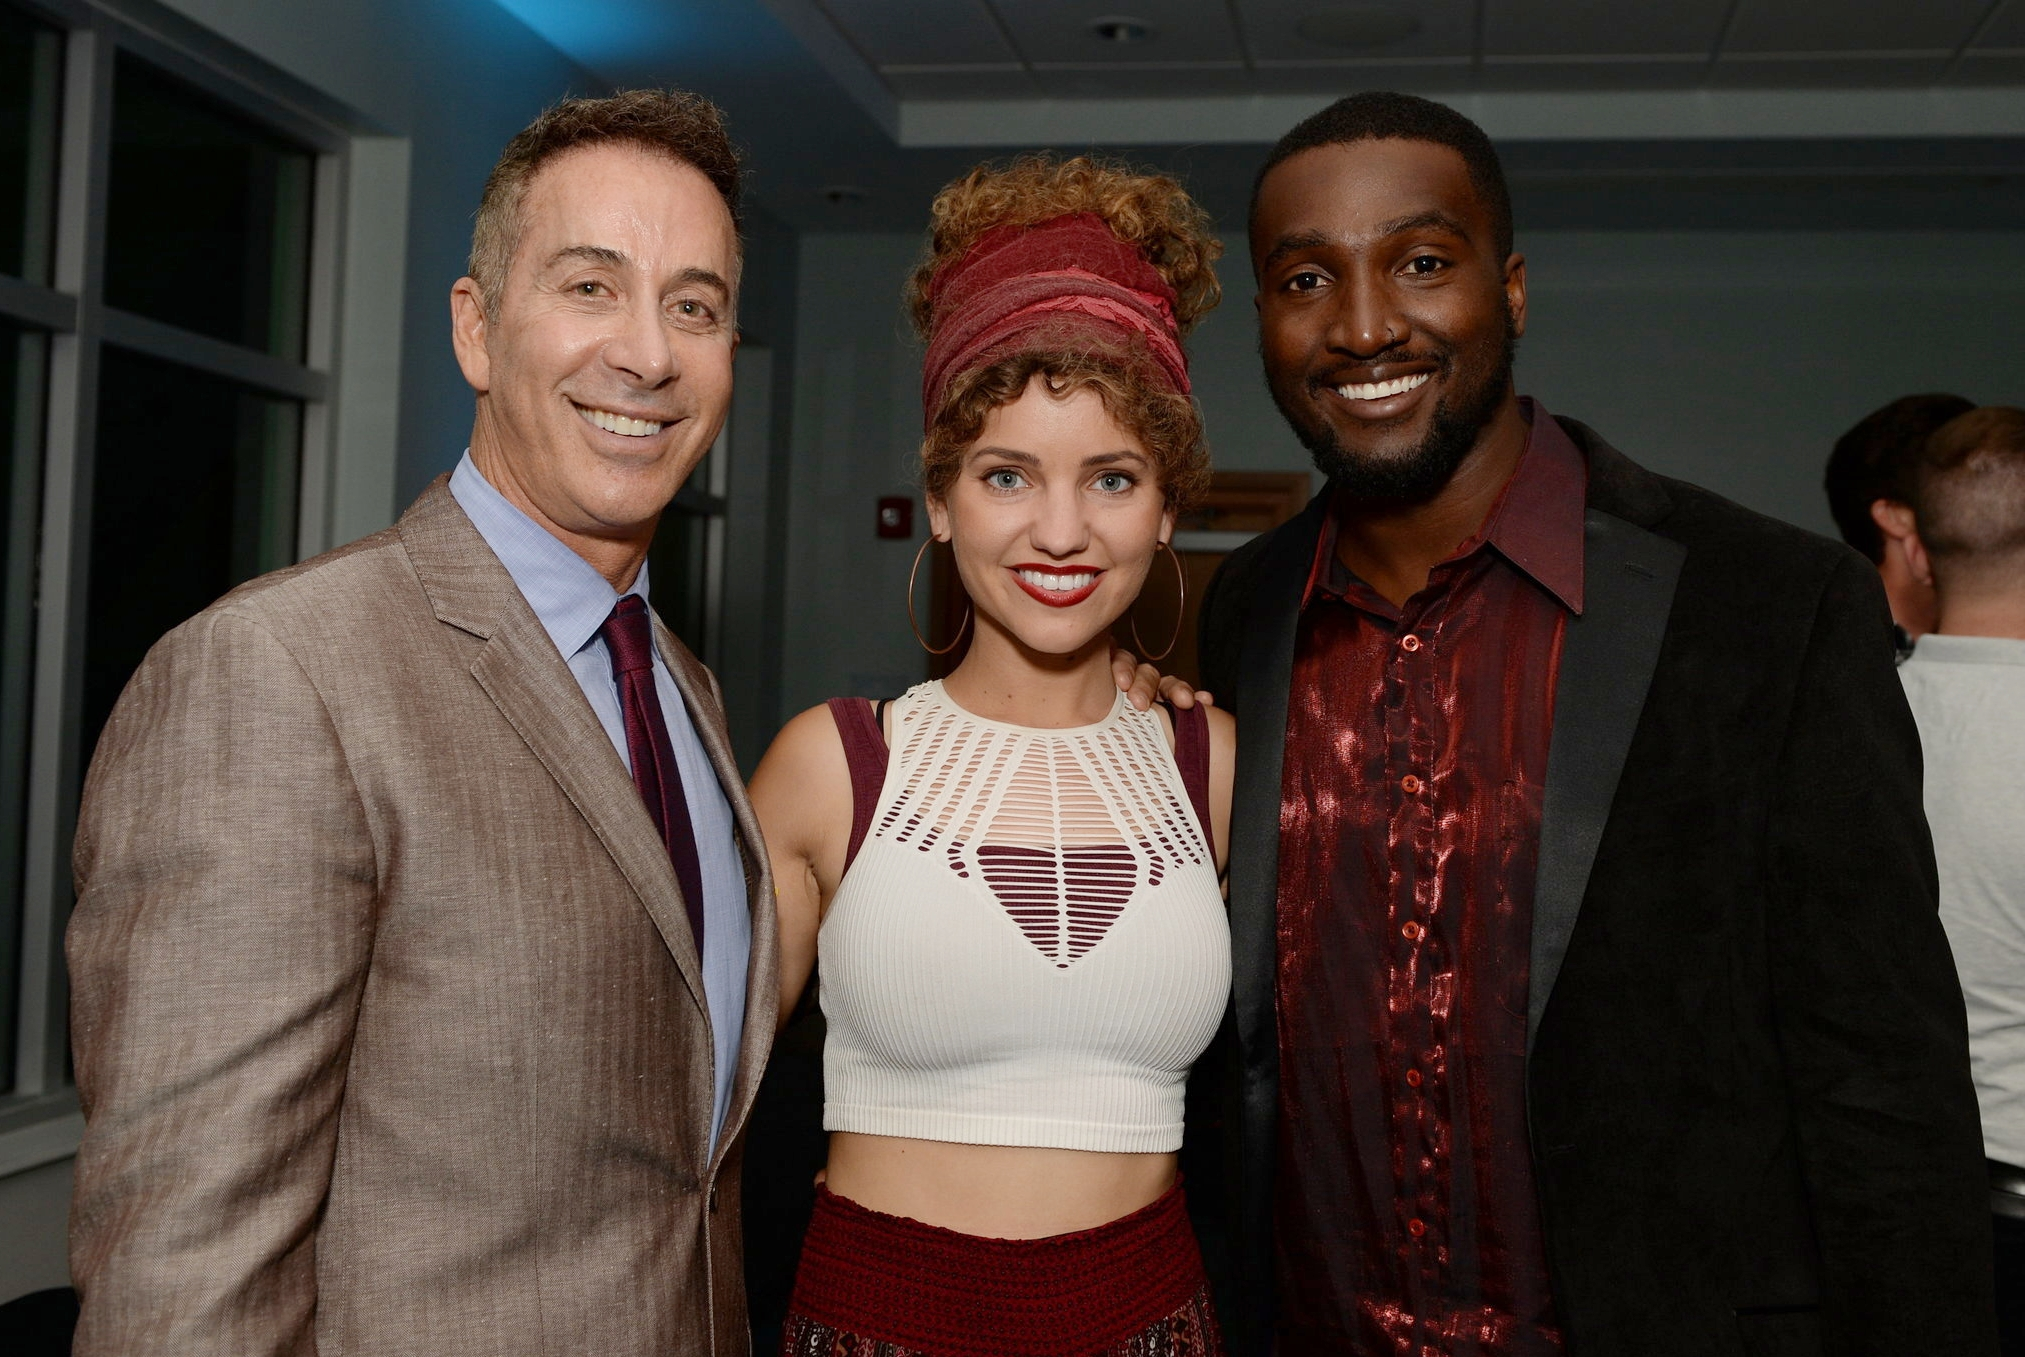 Robert Dover with Olivia and David Willis, two of the opening acts for AEGT Week III. DDeRosa photo.